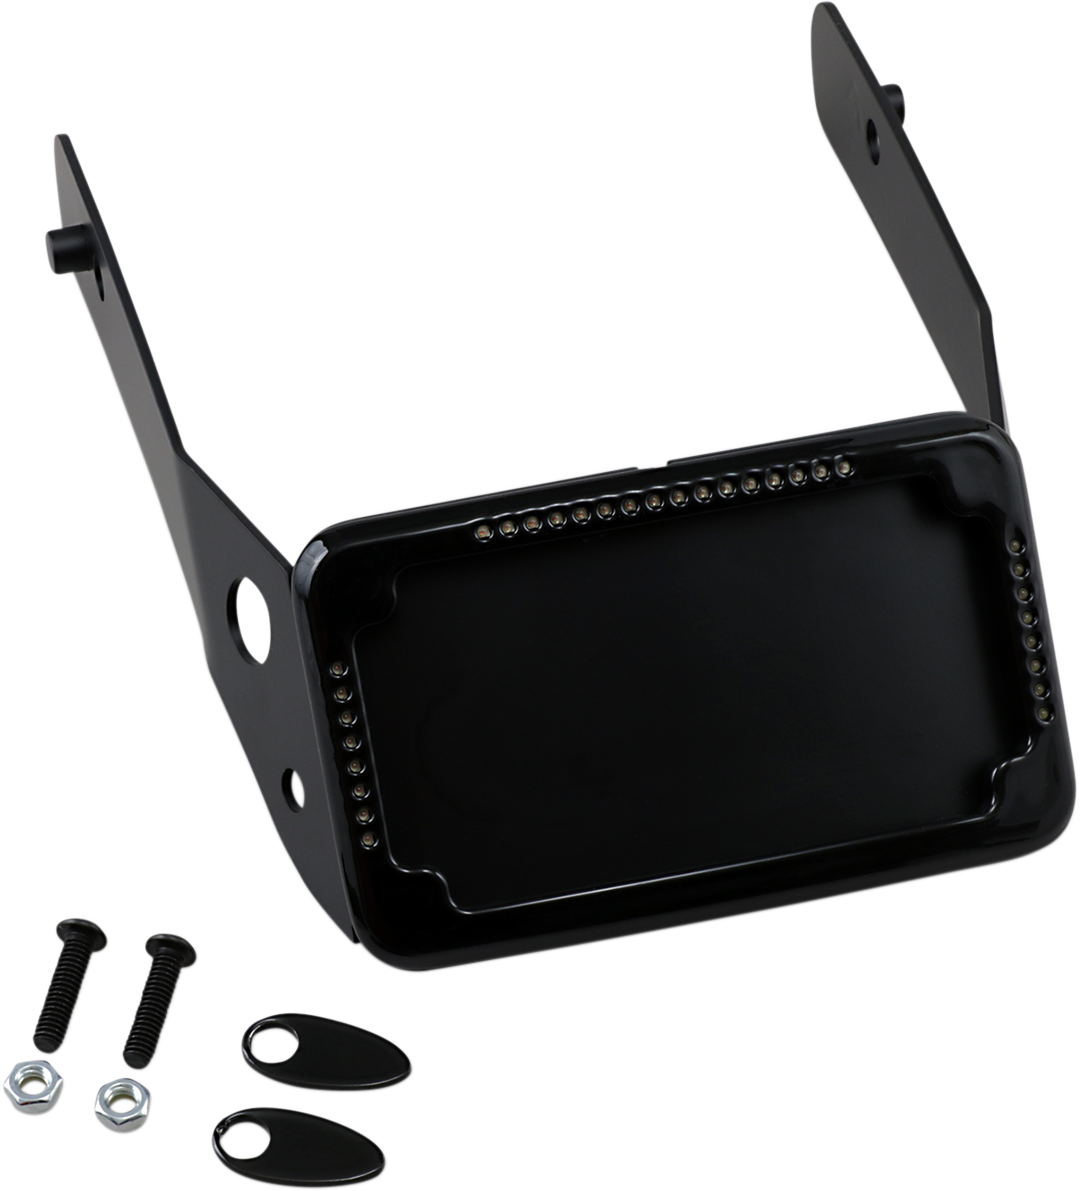 Cycle Visions Black Slick Signals License Plate Frame for 10-17 Harley FXDWG